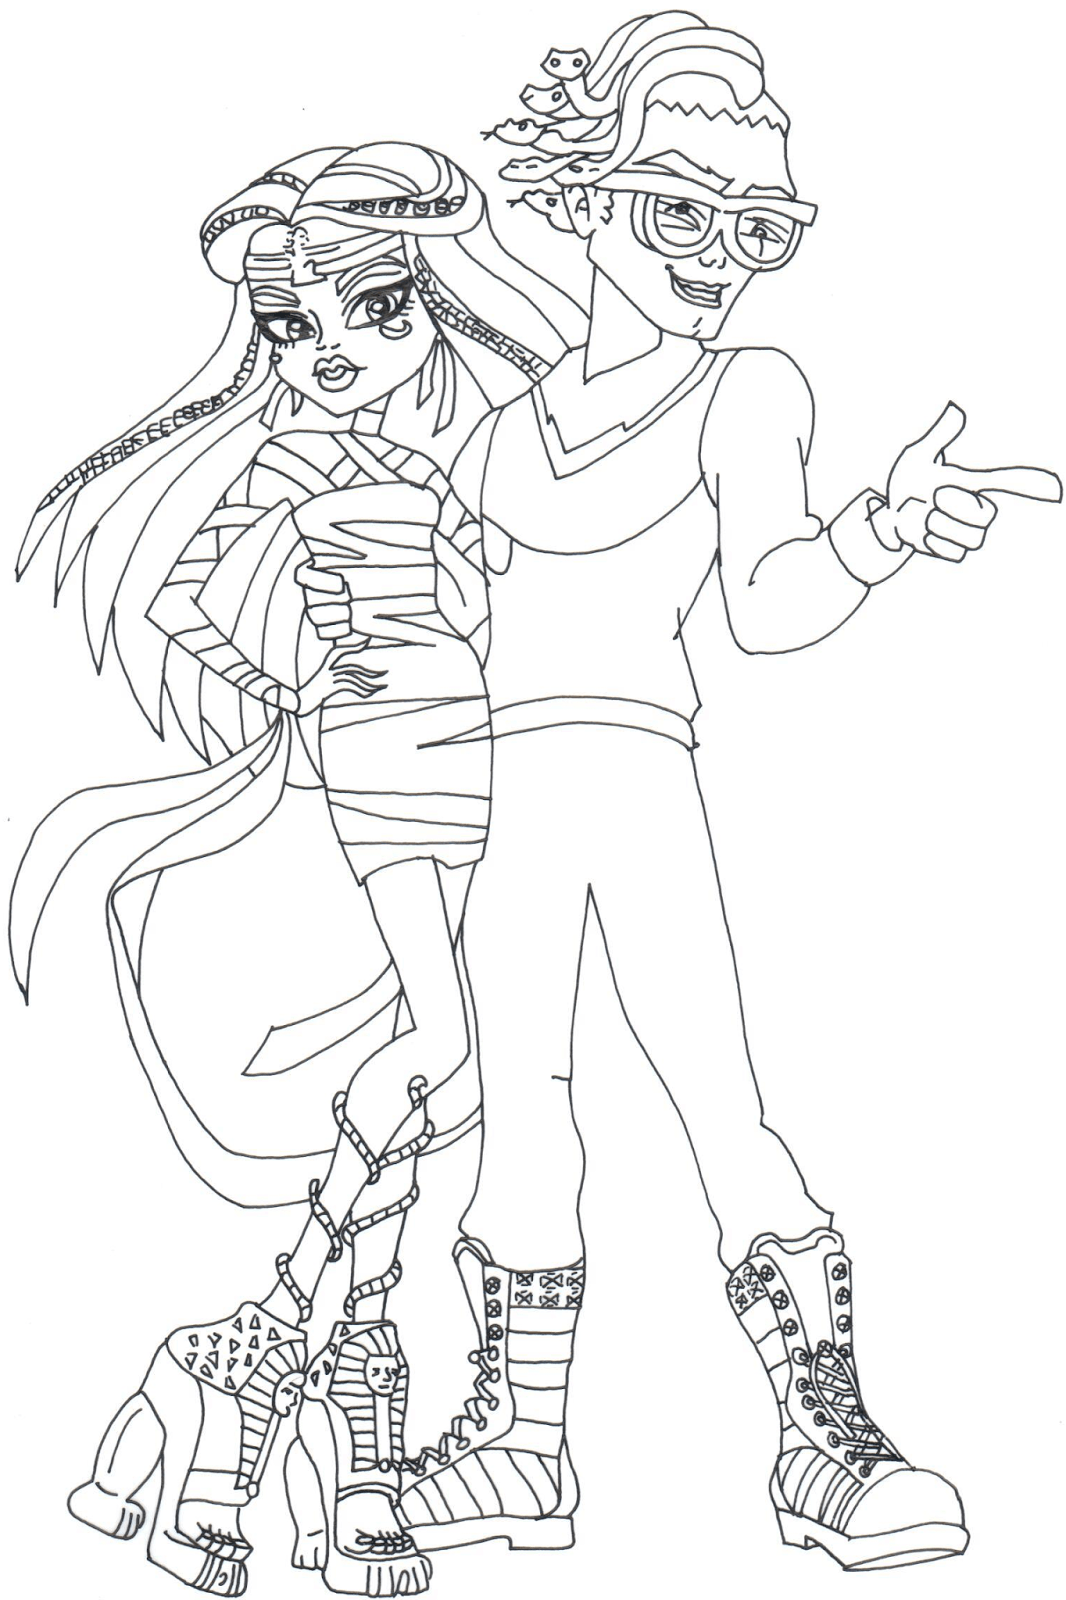 Boo York Cleo Deuce Monster High Coloring Pages